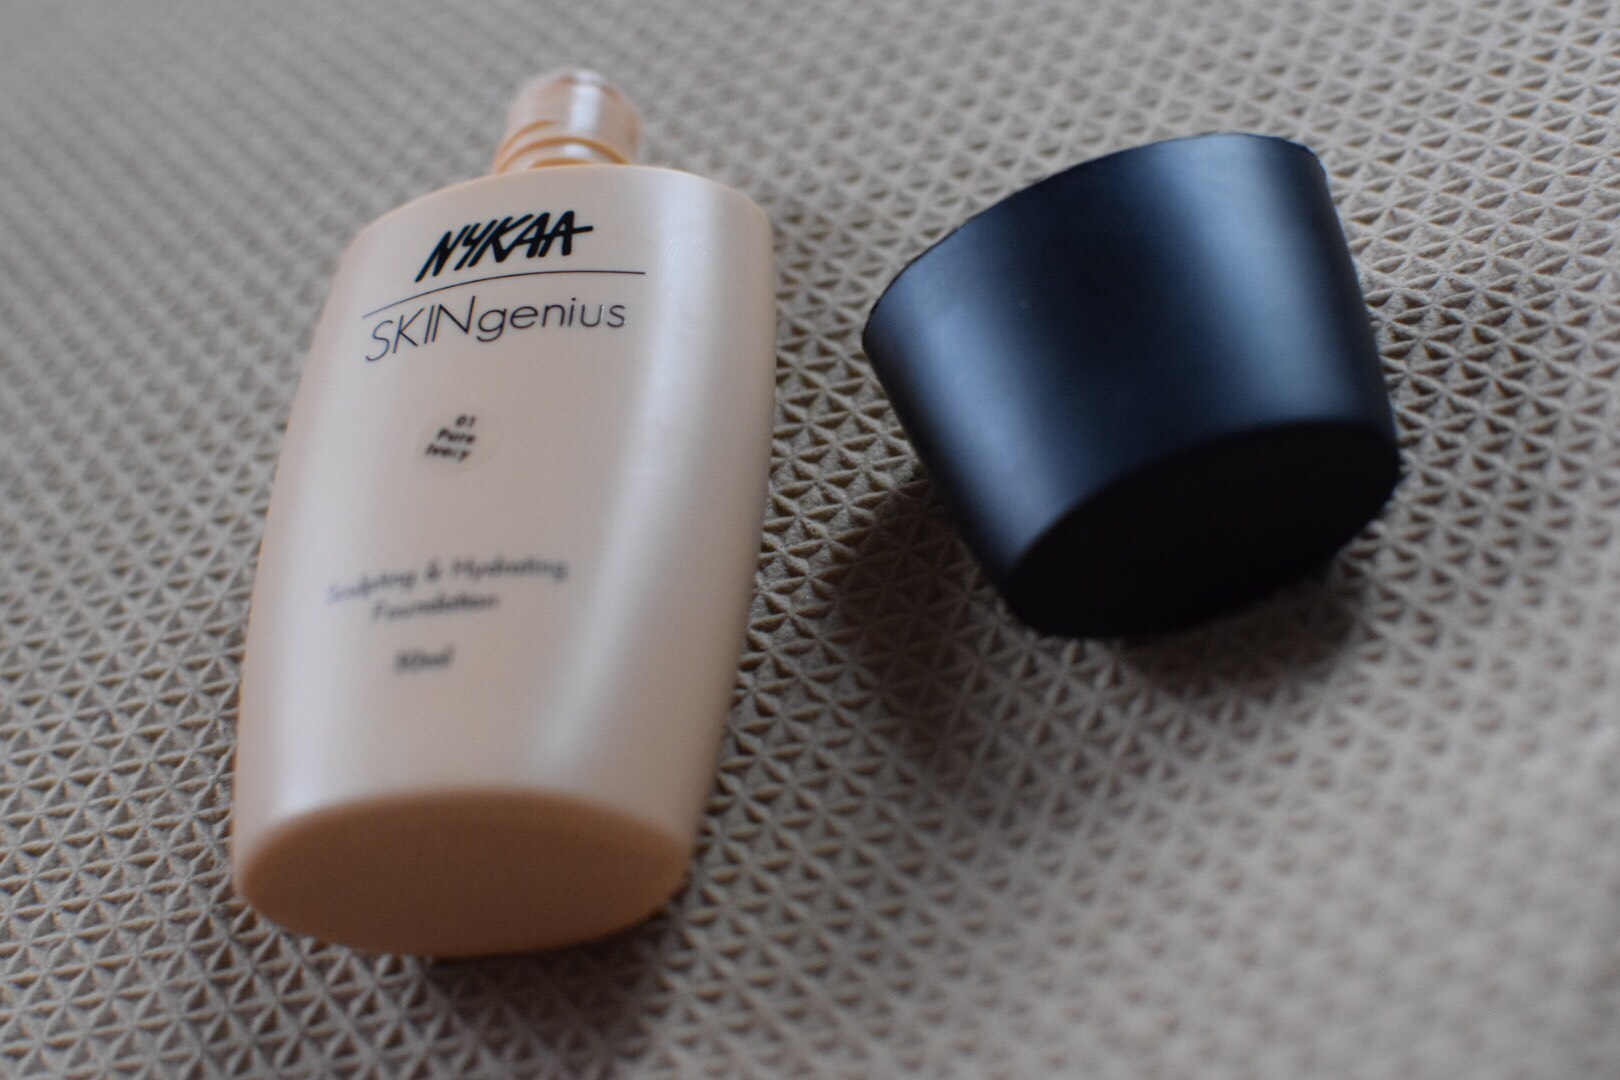 Nykaa Skingenius Sculpting & Hydrating Foundation